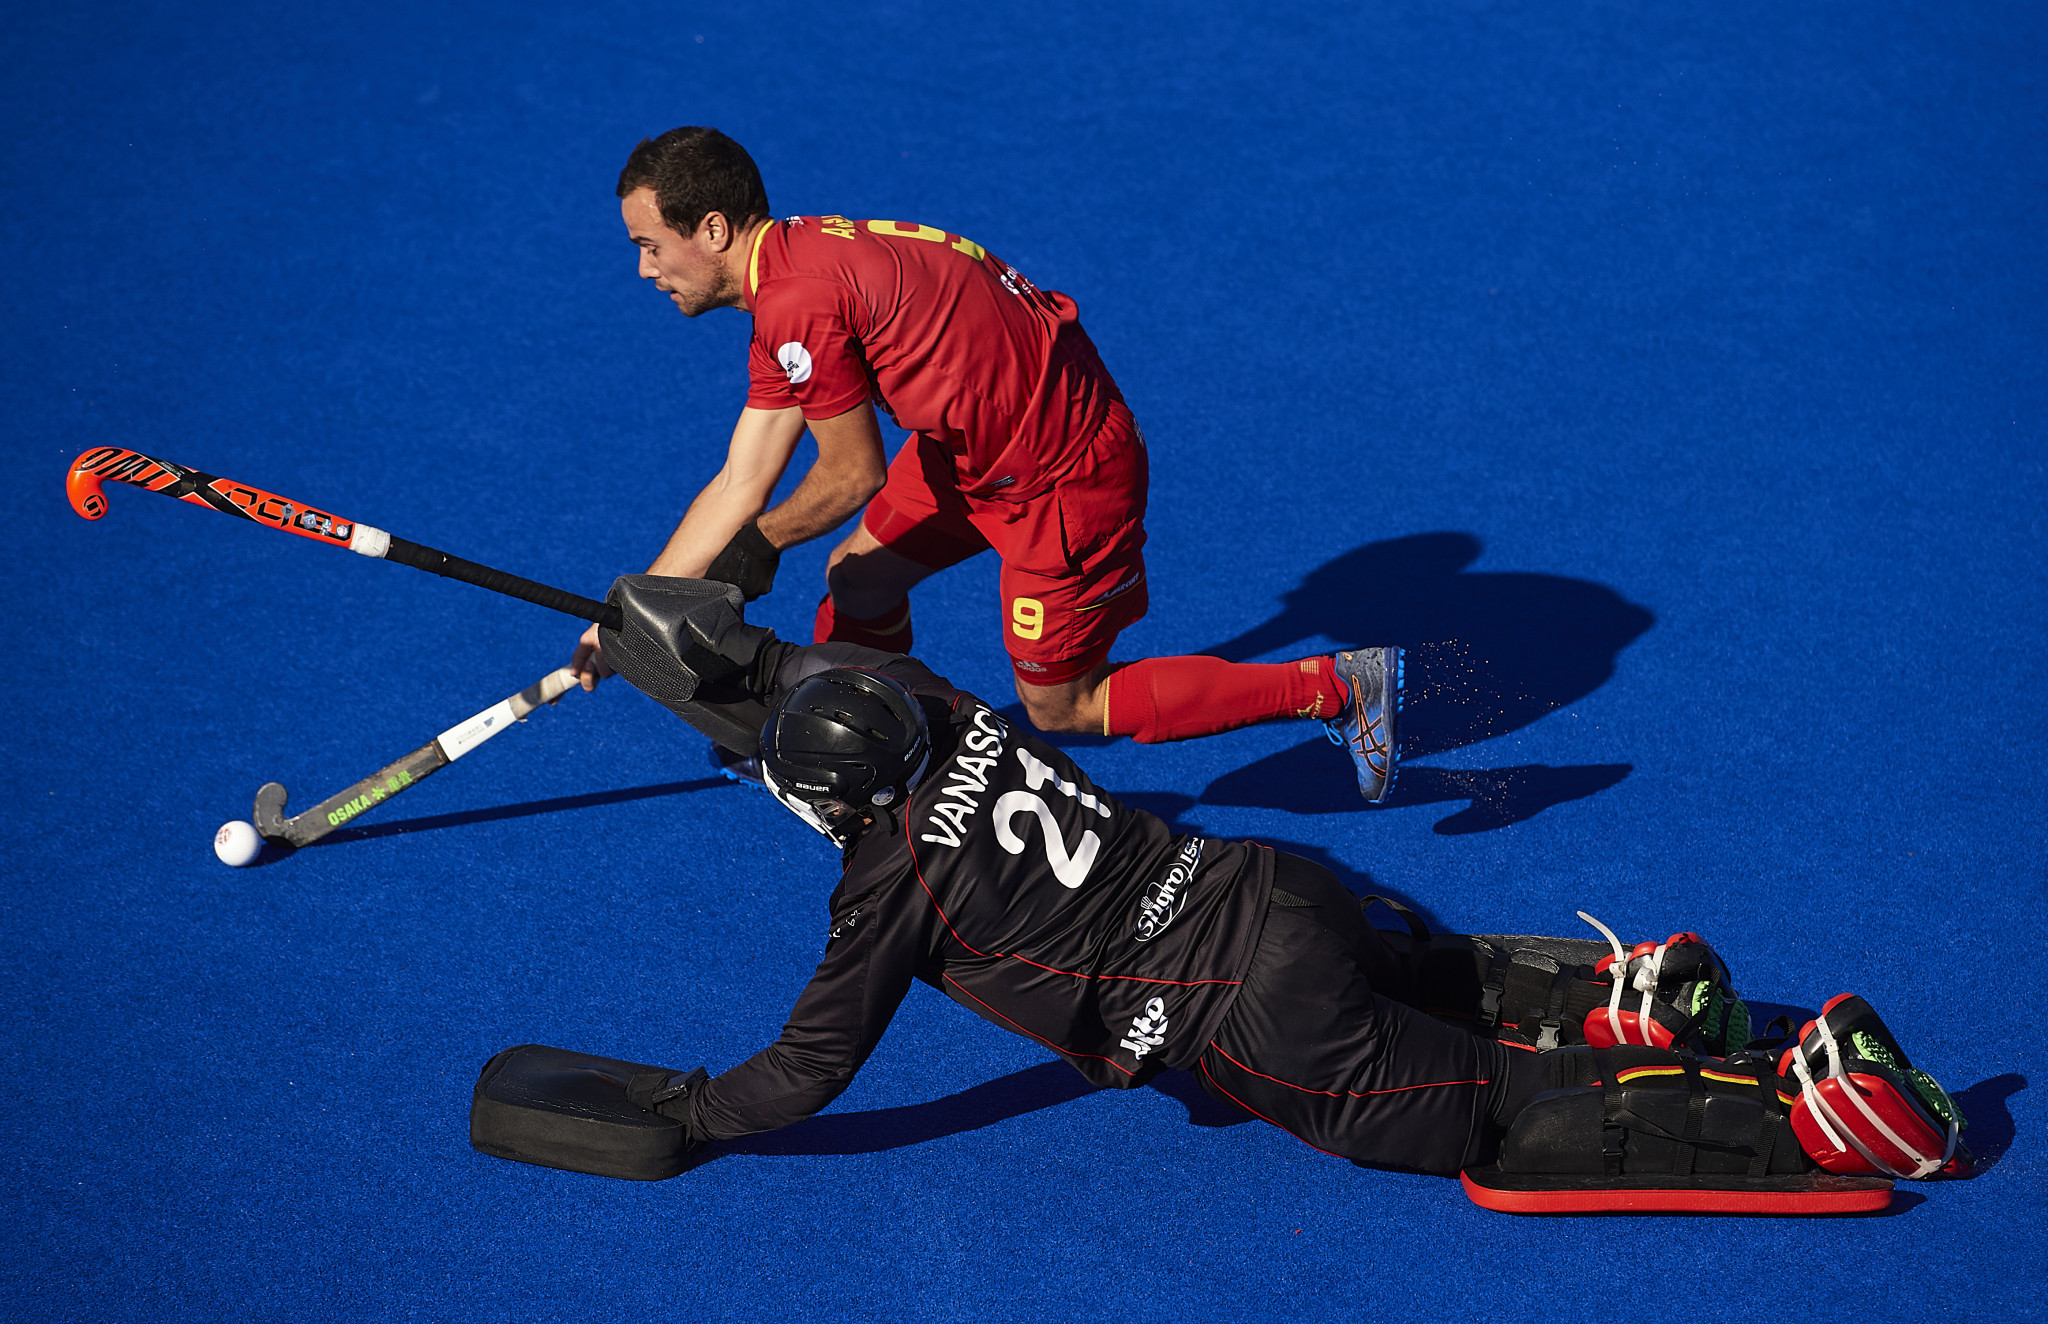 Belgium beat Spain in a shootout to win the first match of the FIH Pro League ©Getty Images